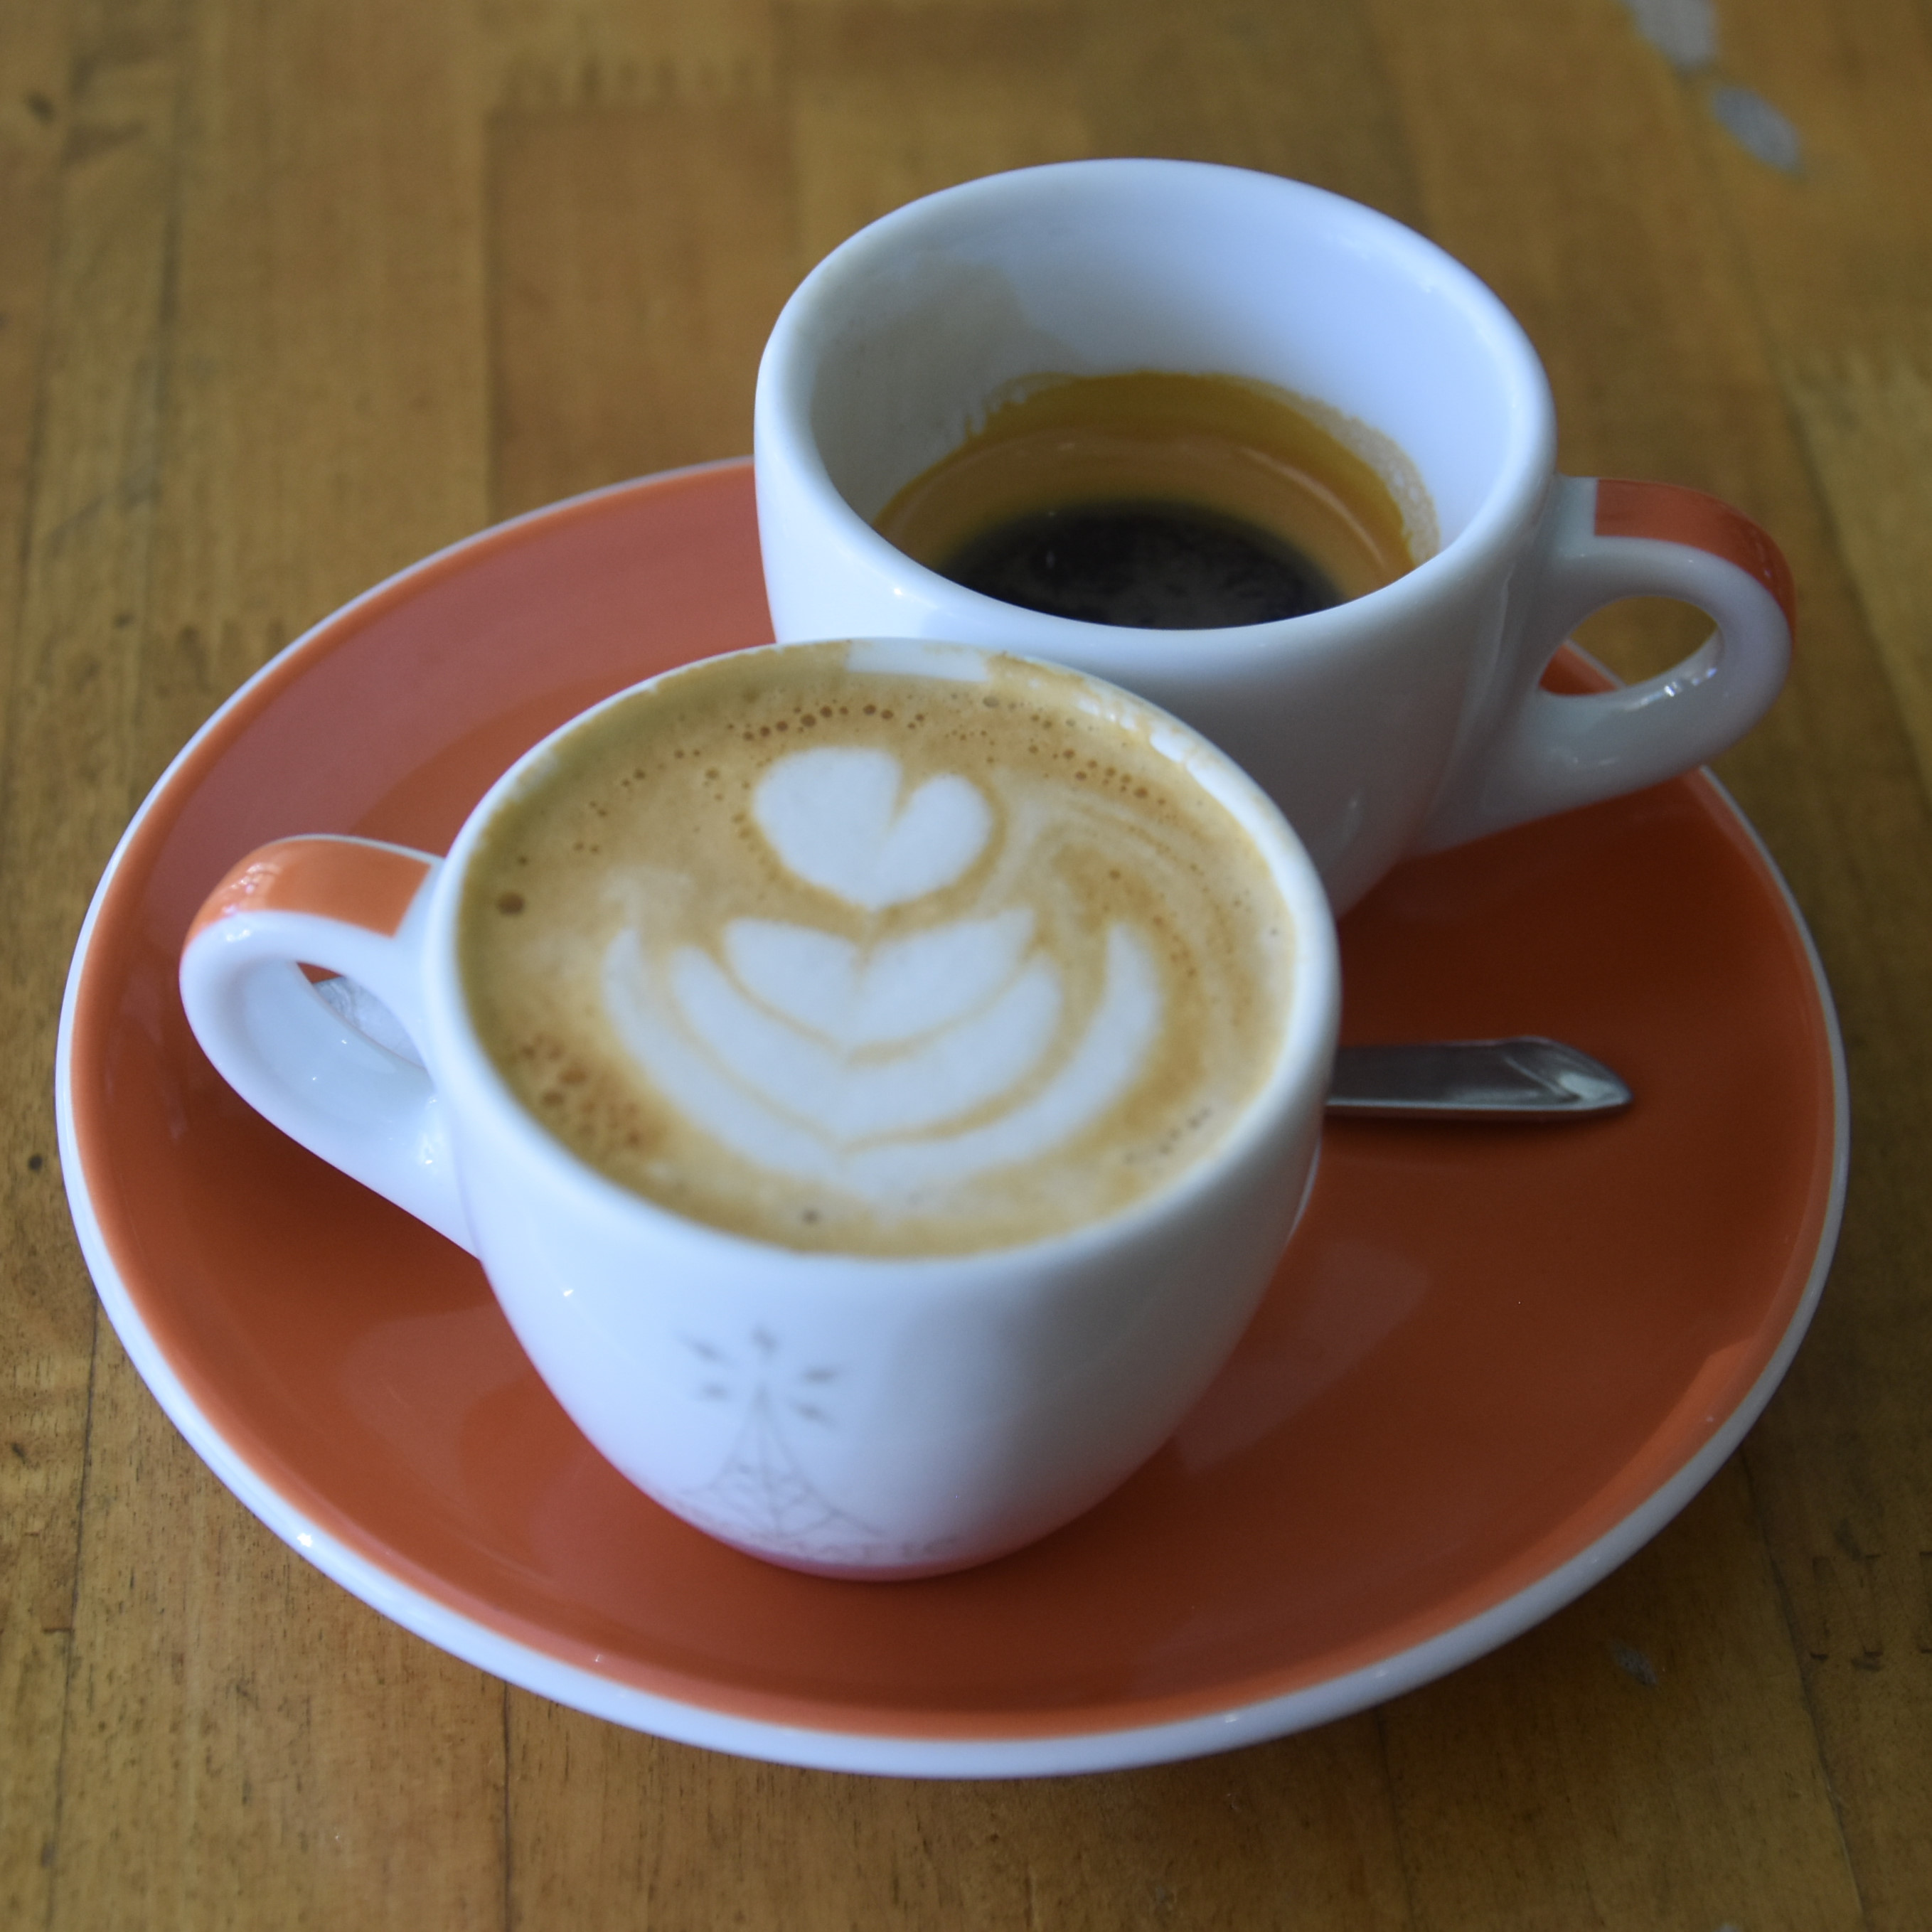 A 1&1 (espresso + macchiato) made with the Papua New Guinea single-origin at Chromatic Coffee in Santa Clara.